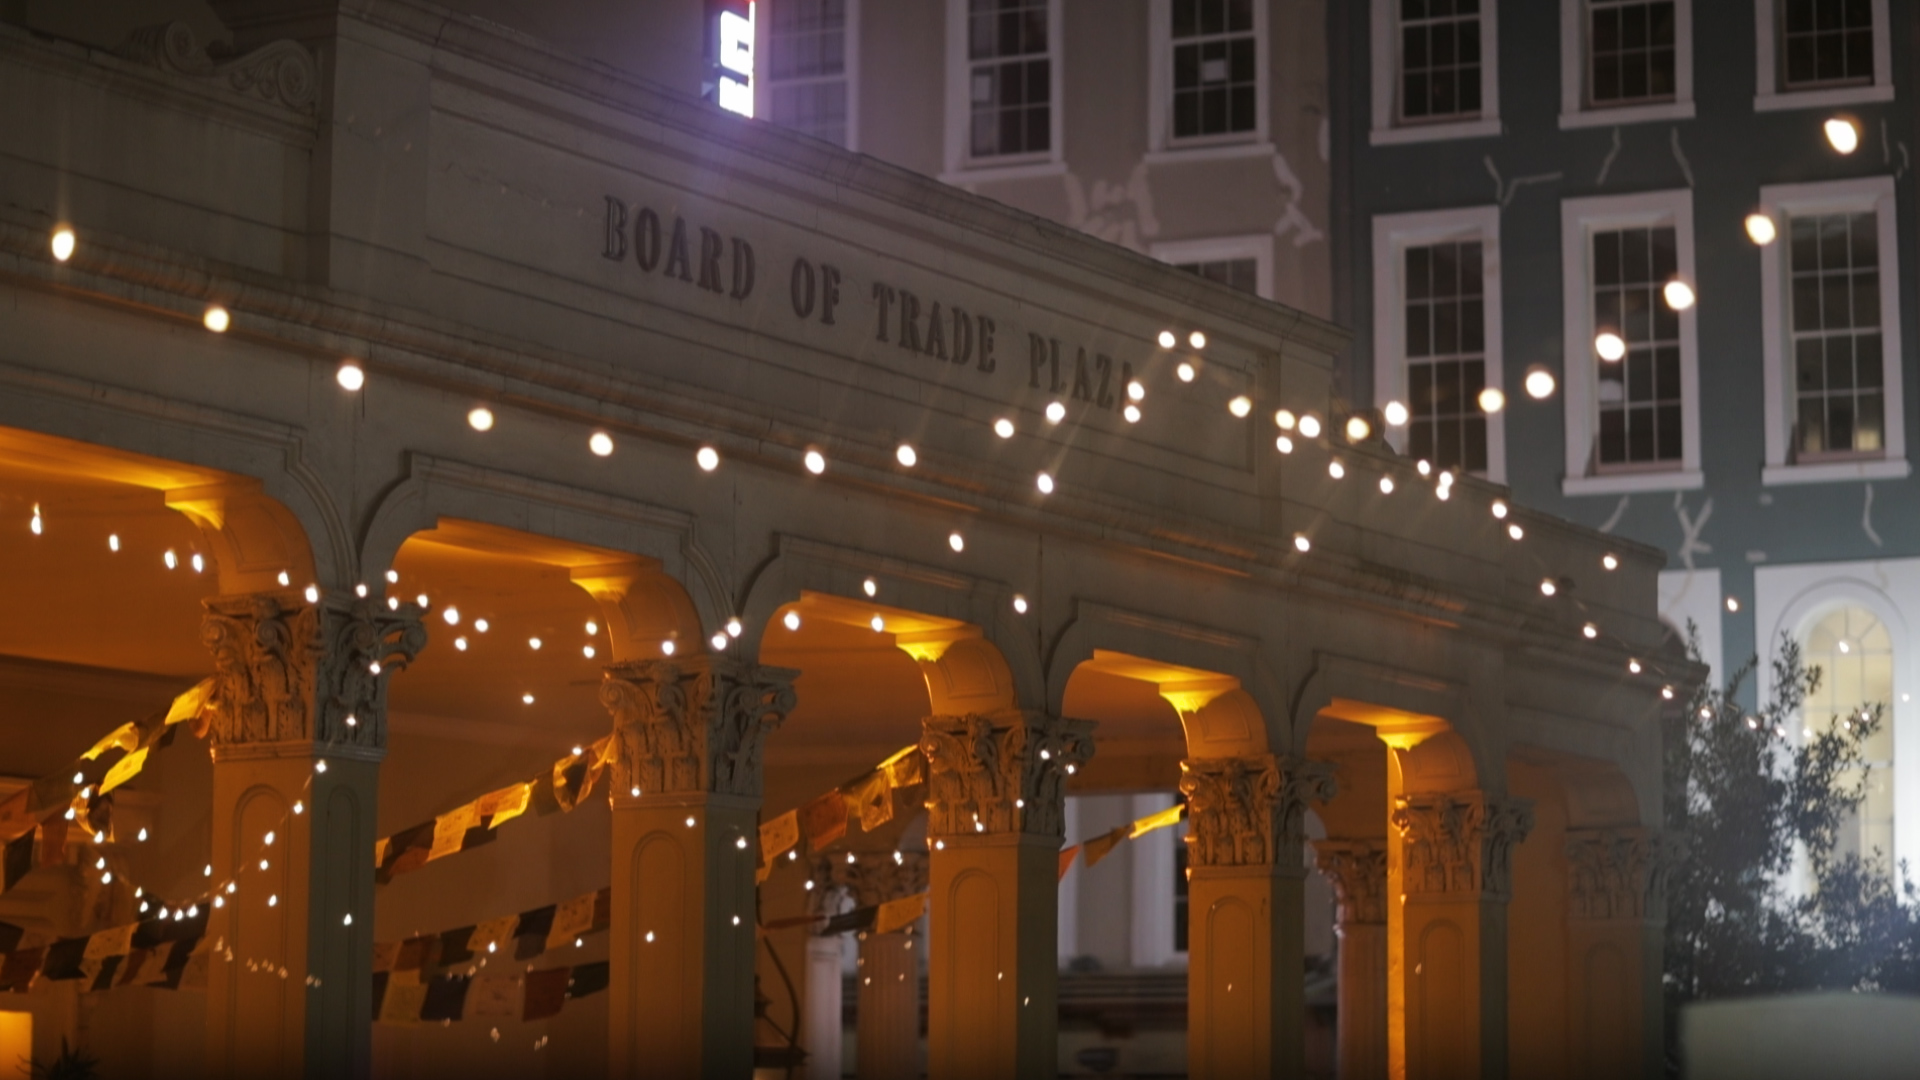 Anya and Max_New Orleans Wedding Video_Bride Film_Board of Trade wedding